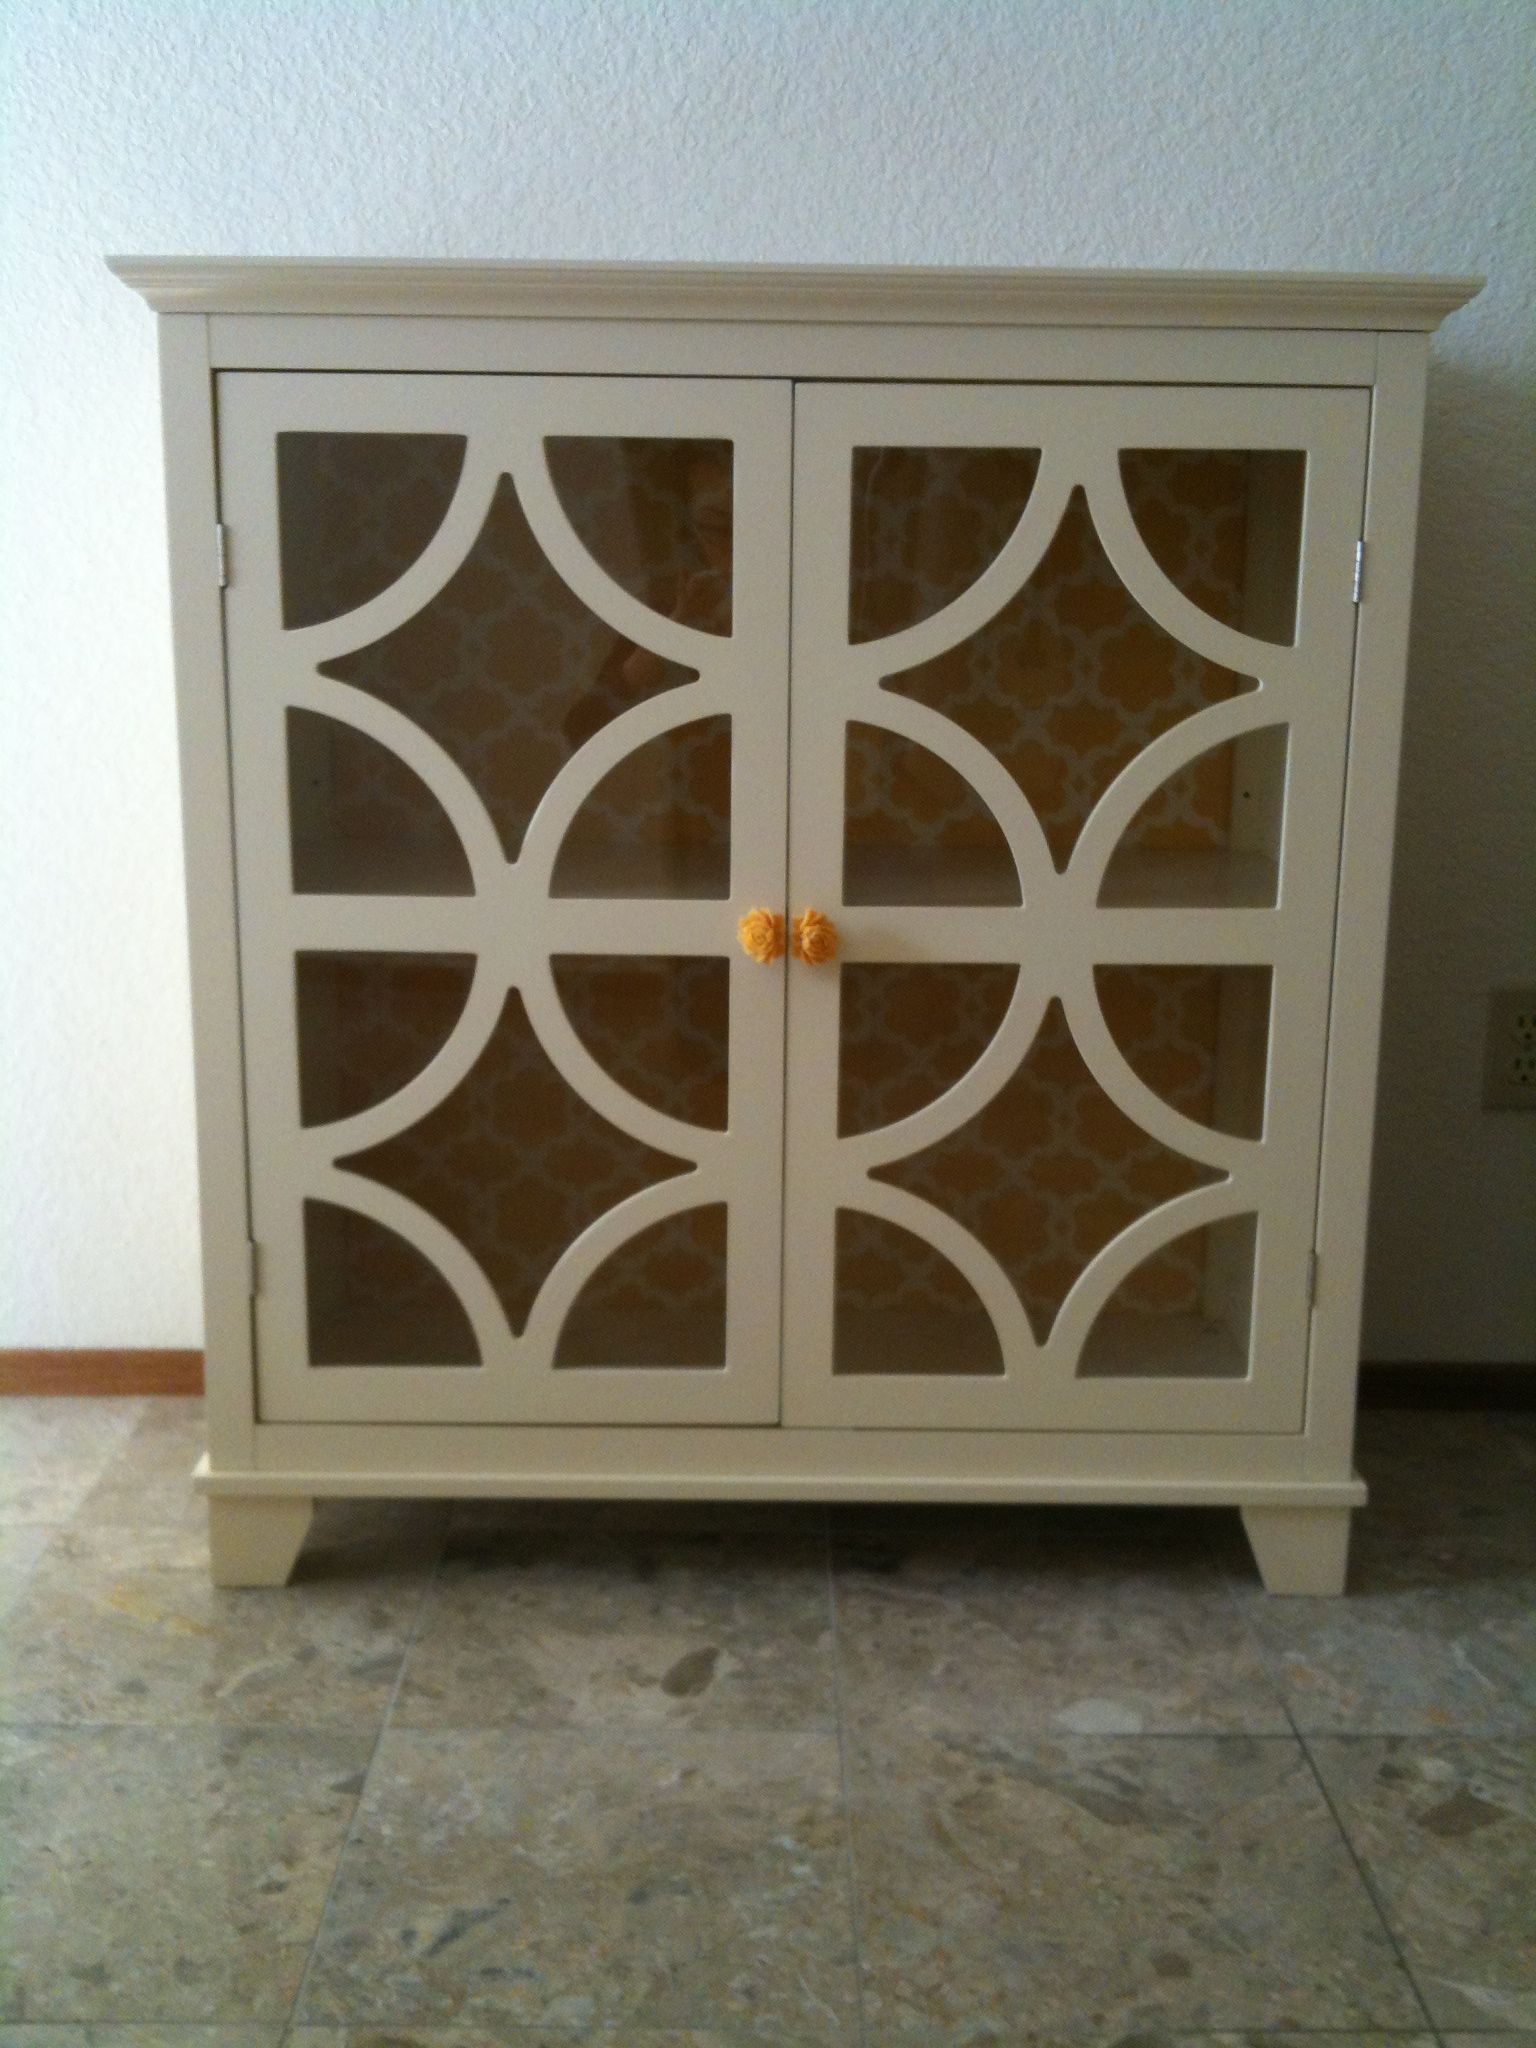 Dressed up a plain cabinet with new knobs and fancy fabric inside.